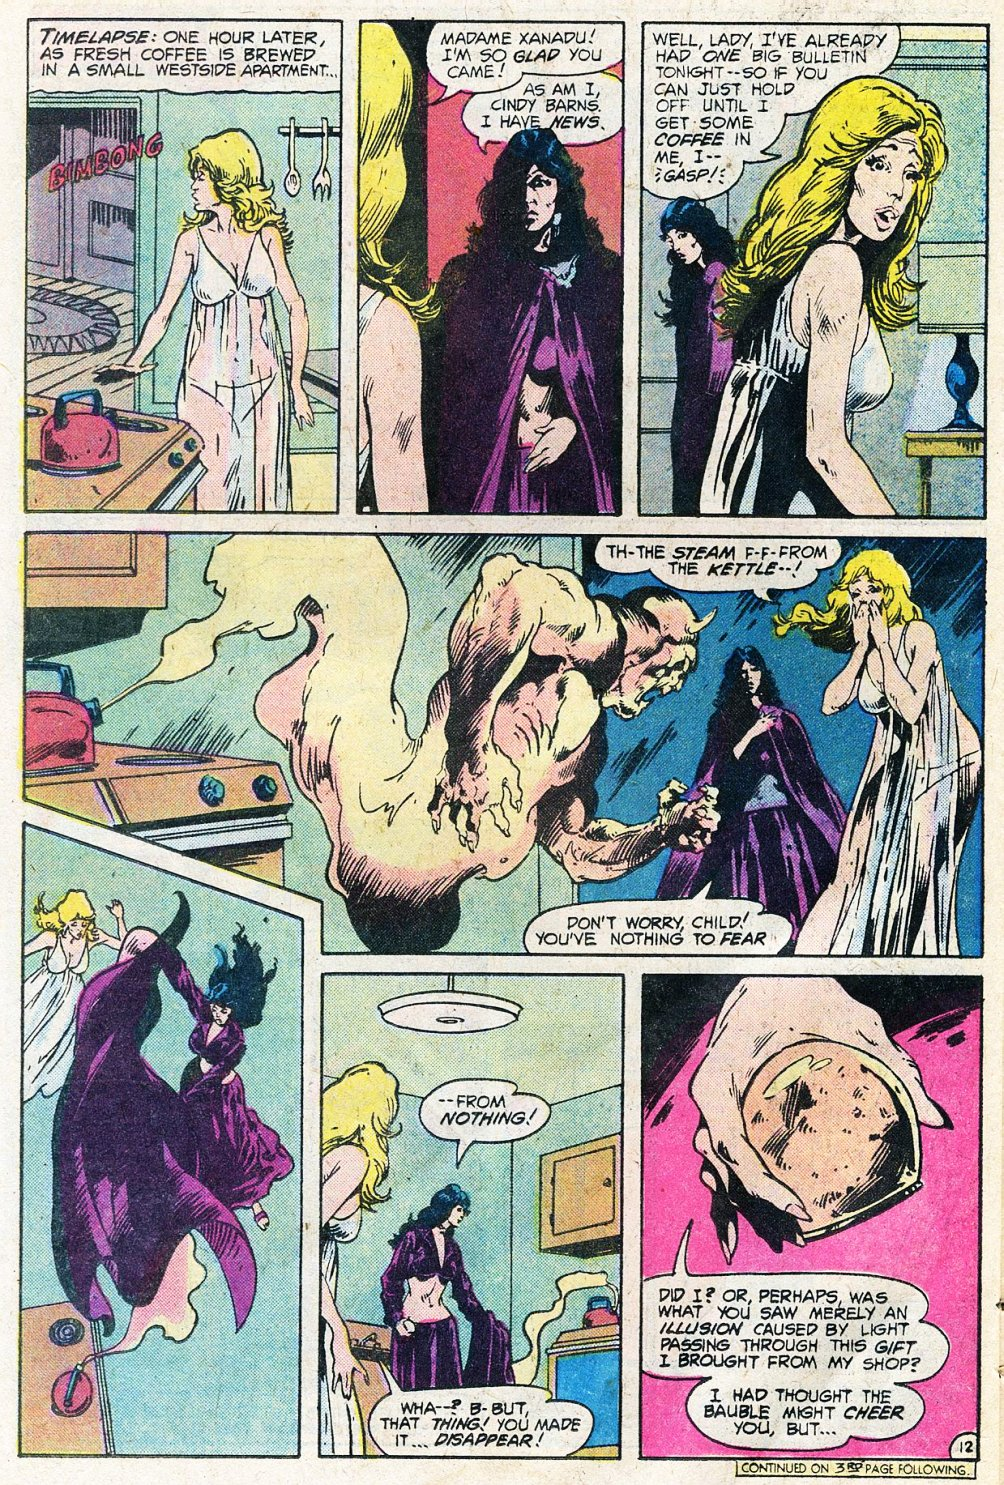 Doorway to Nightmare (1978) #1 pg12, drawn by Val Mayerik & colored by Liz Berube.